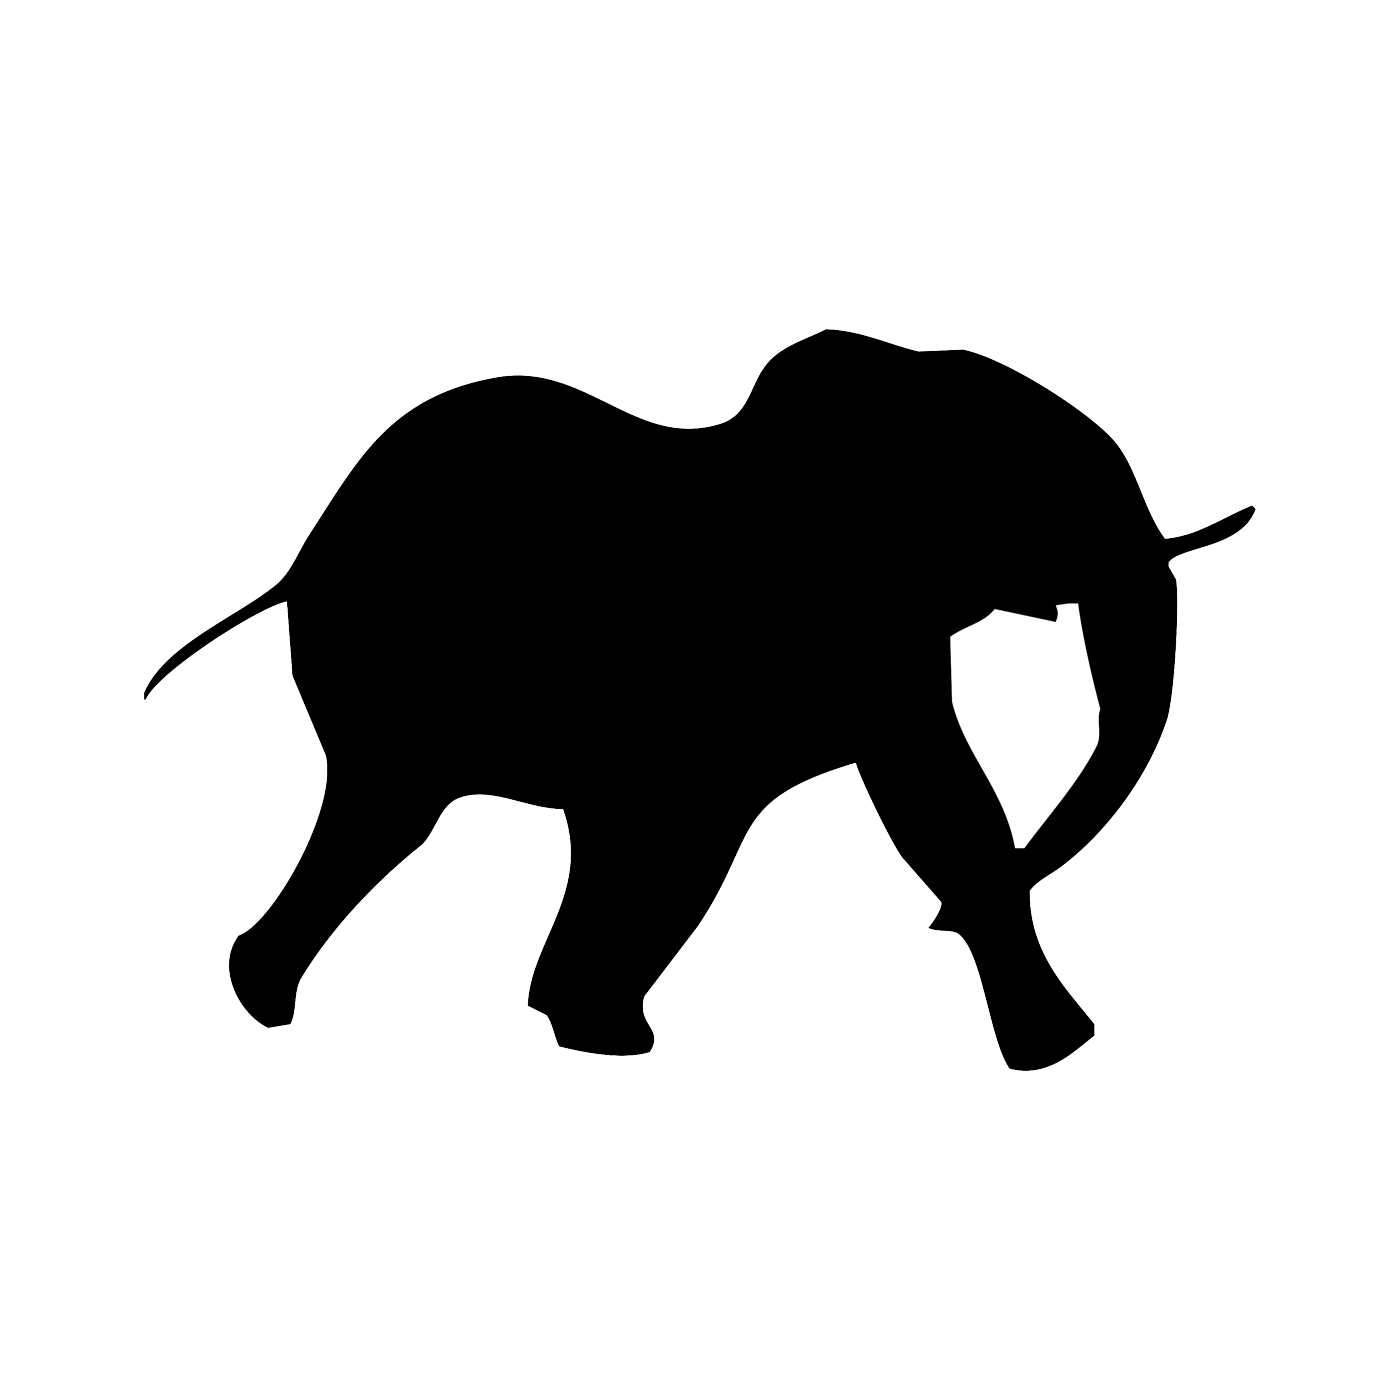 Elephant Silhouette Tattoo at GetDrawings.com | Free for personal ...